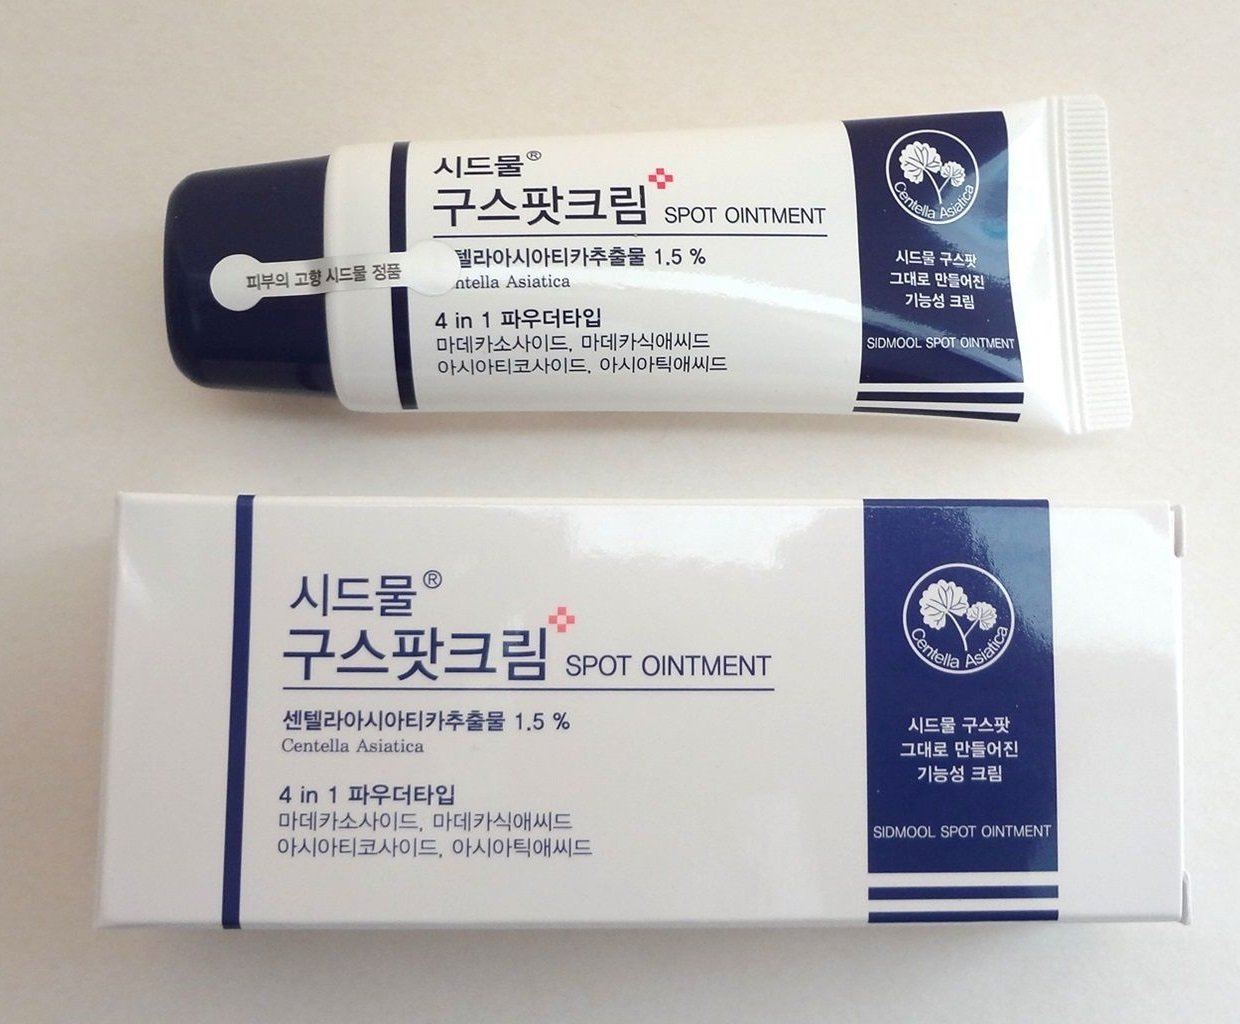 A container of Sidmool Good Spot Cream (From: amazon.com).